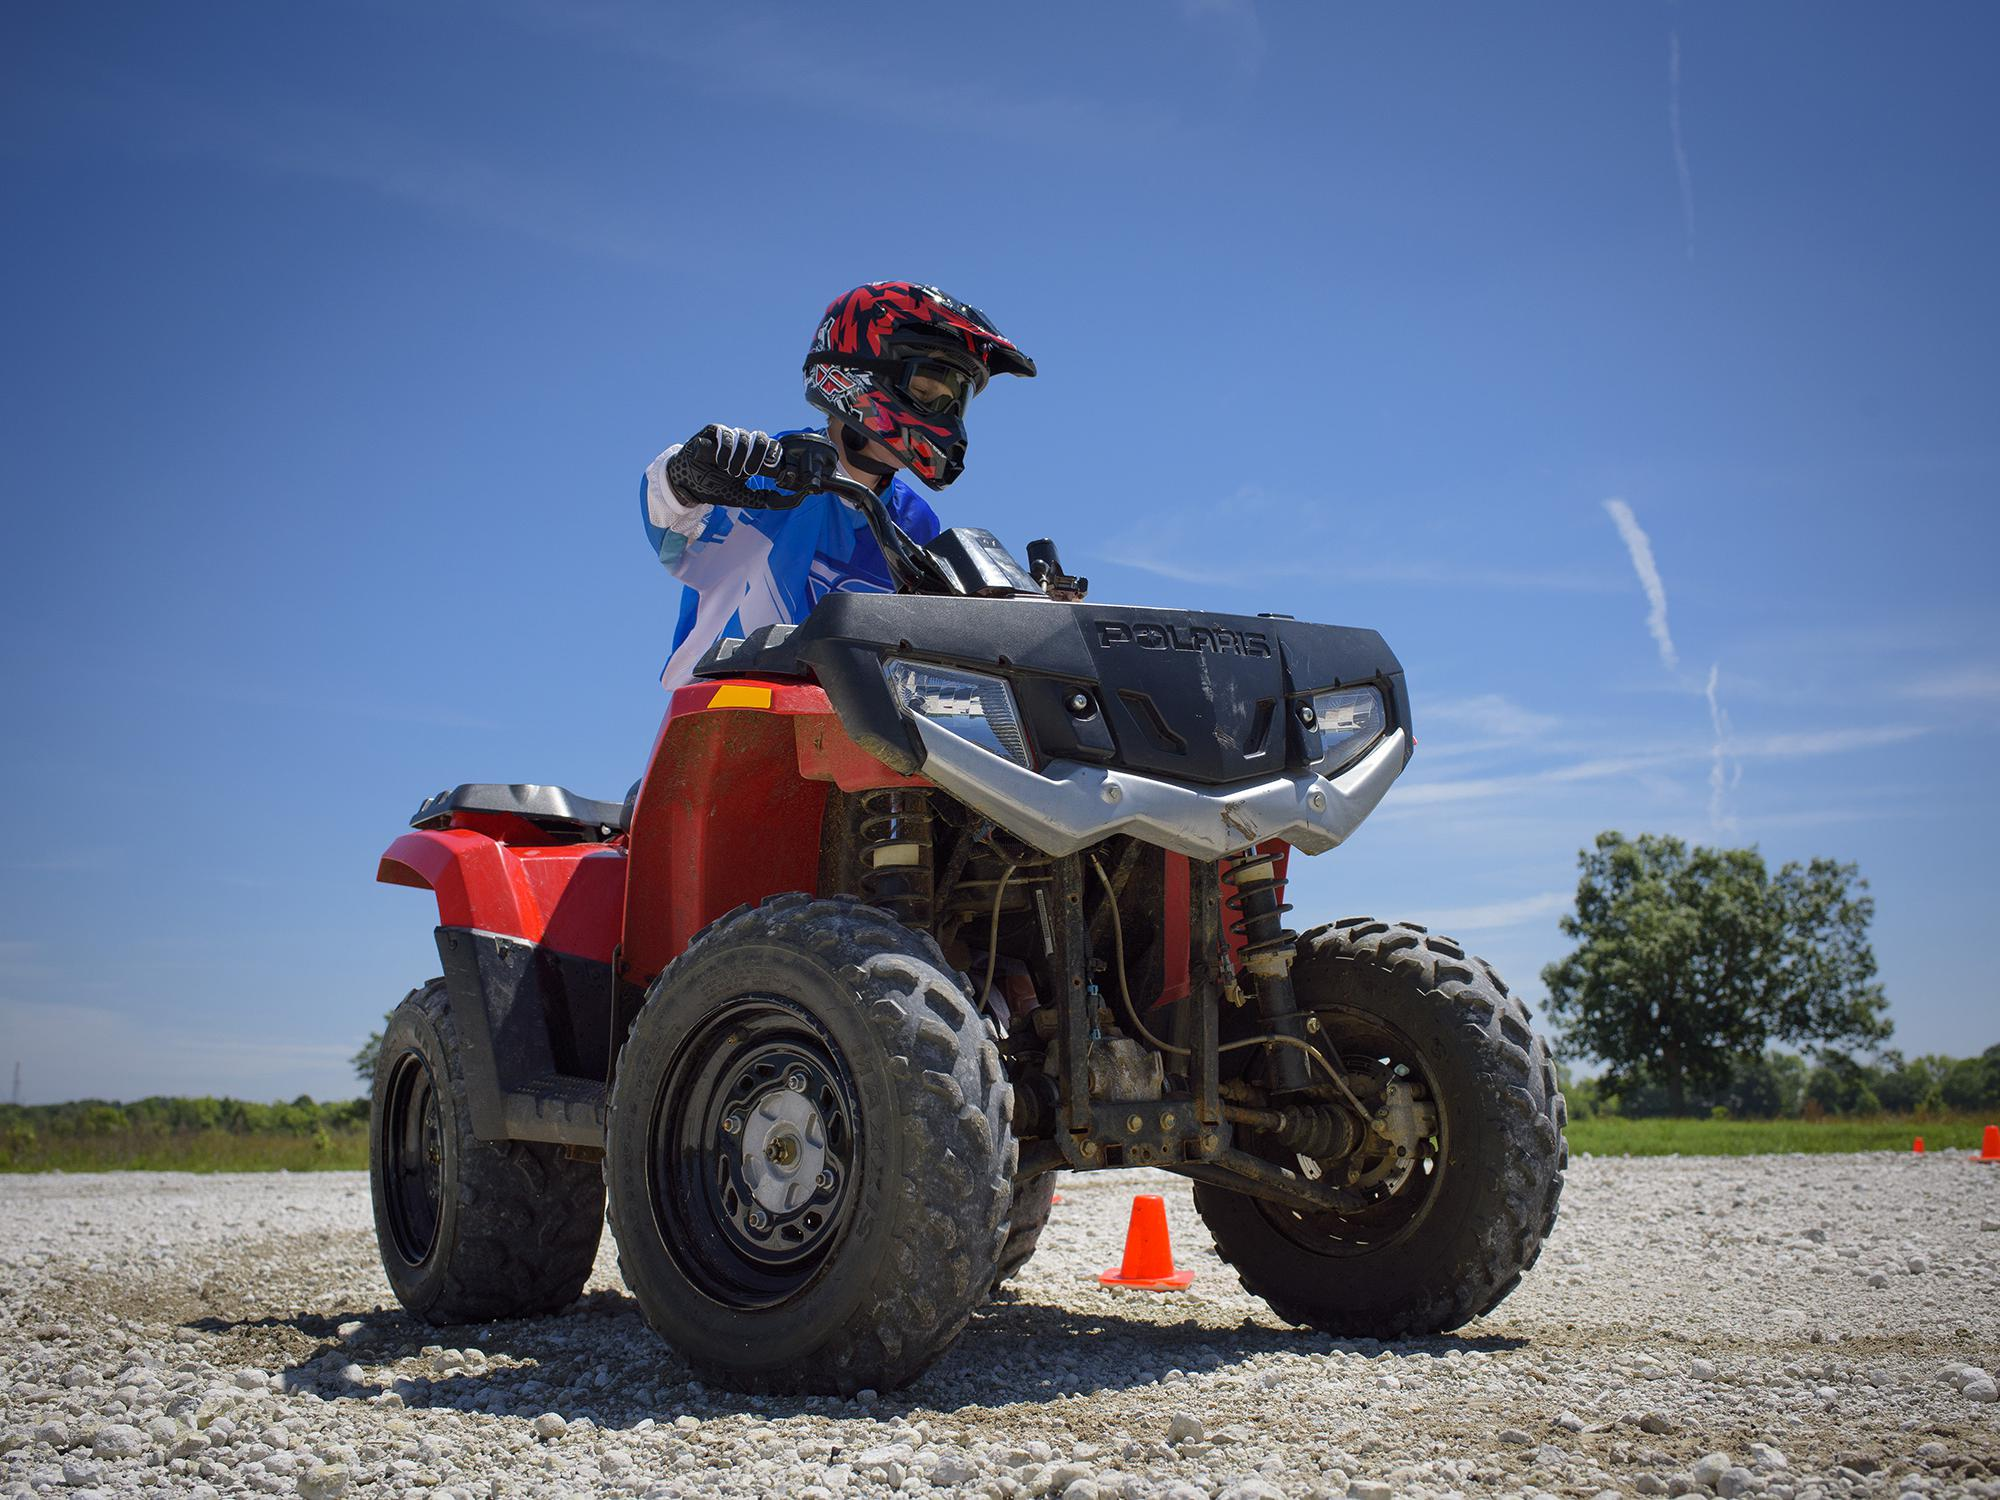 A young rider in full safety gear navigates a turn on an all-terrain vehicle.